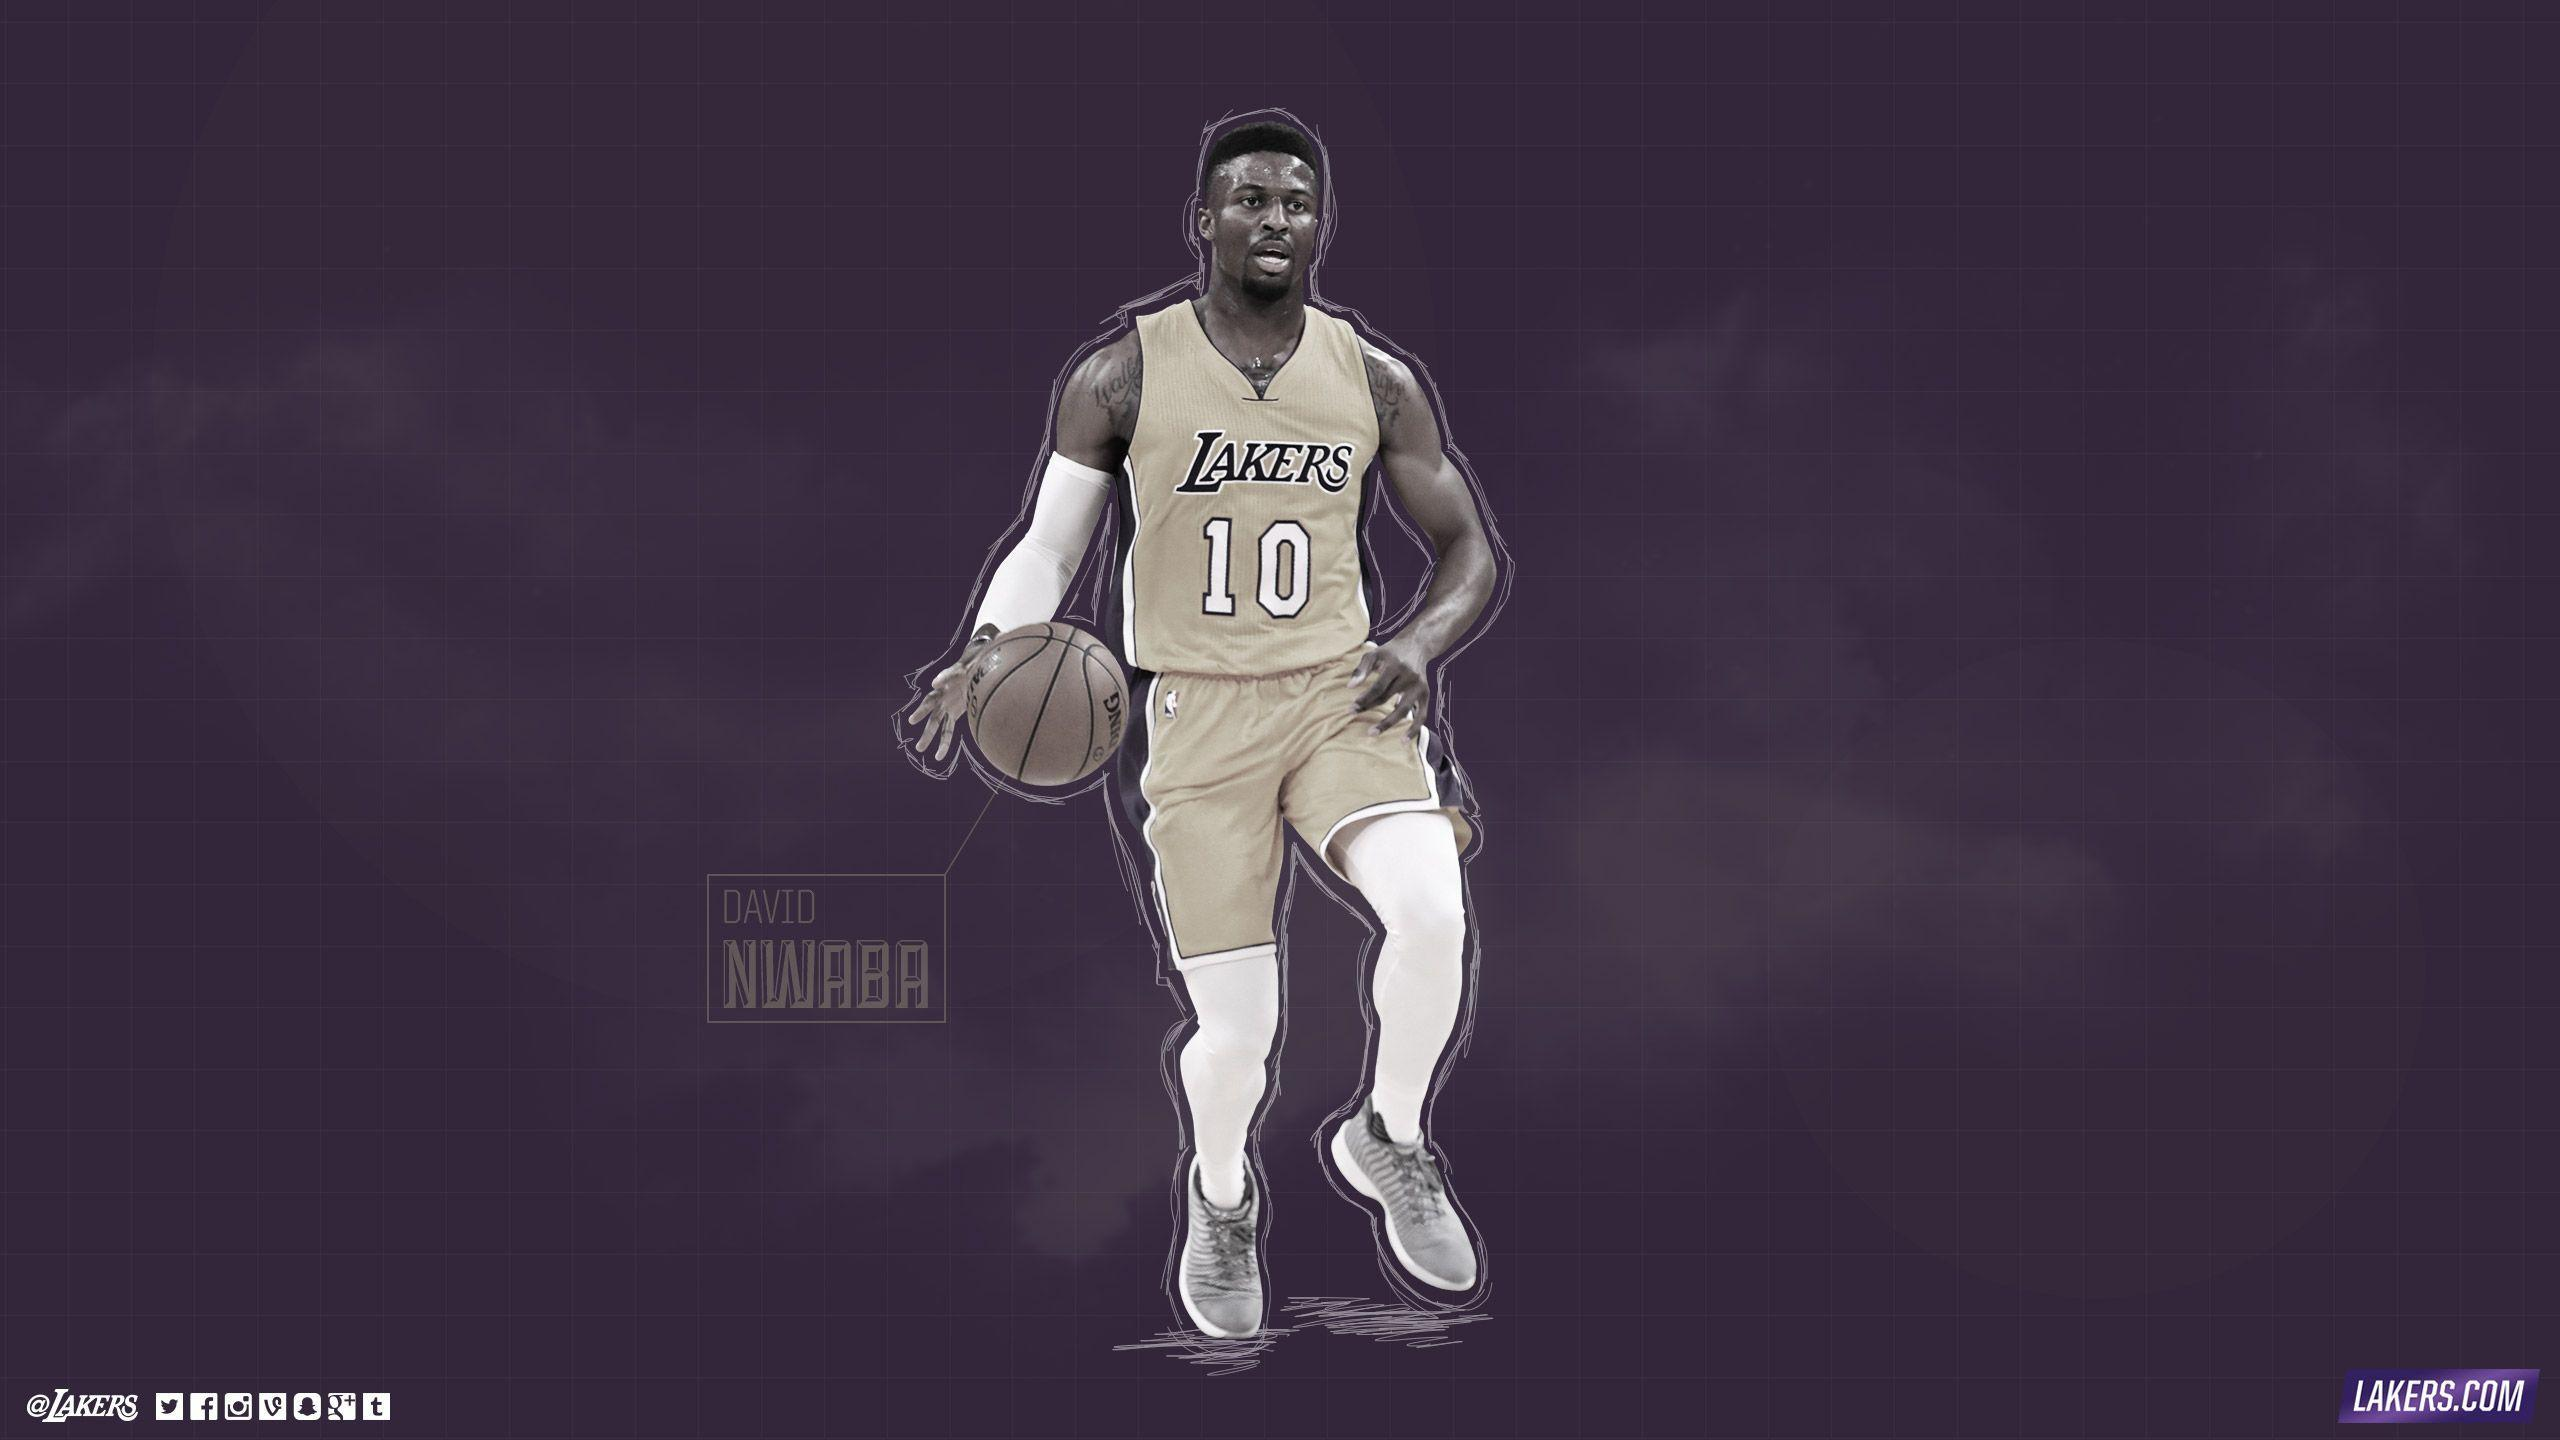 Lakers Wallpapers And Infographics: NBA Player Wallpapers